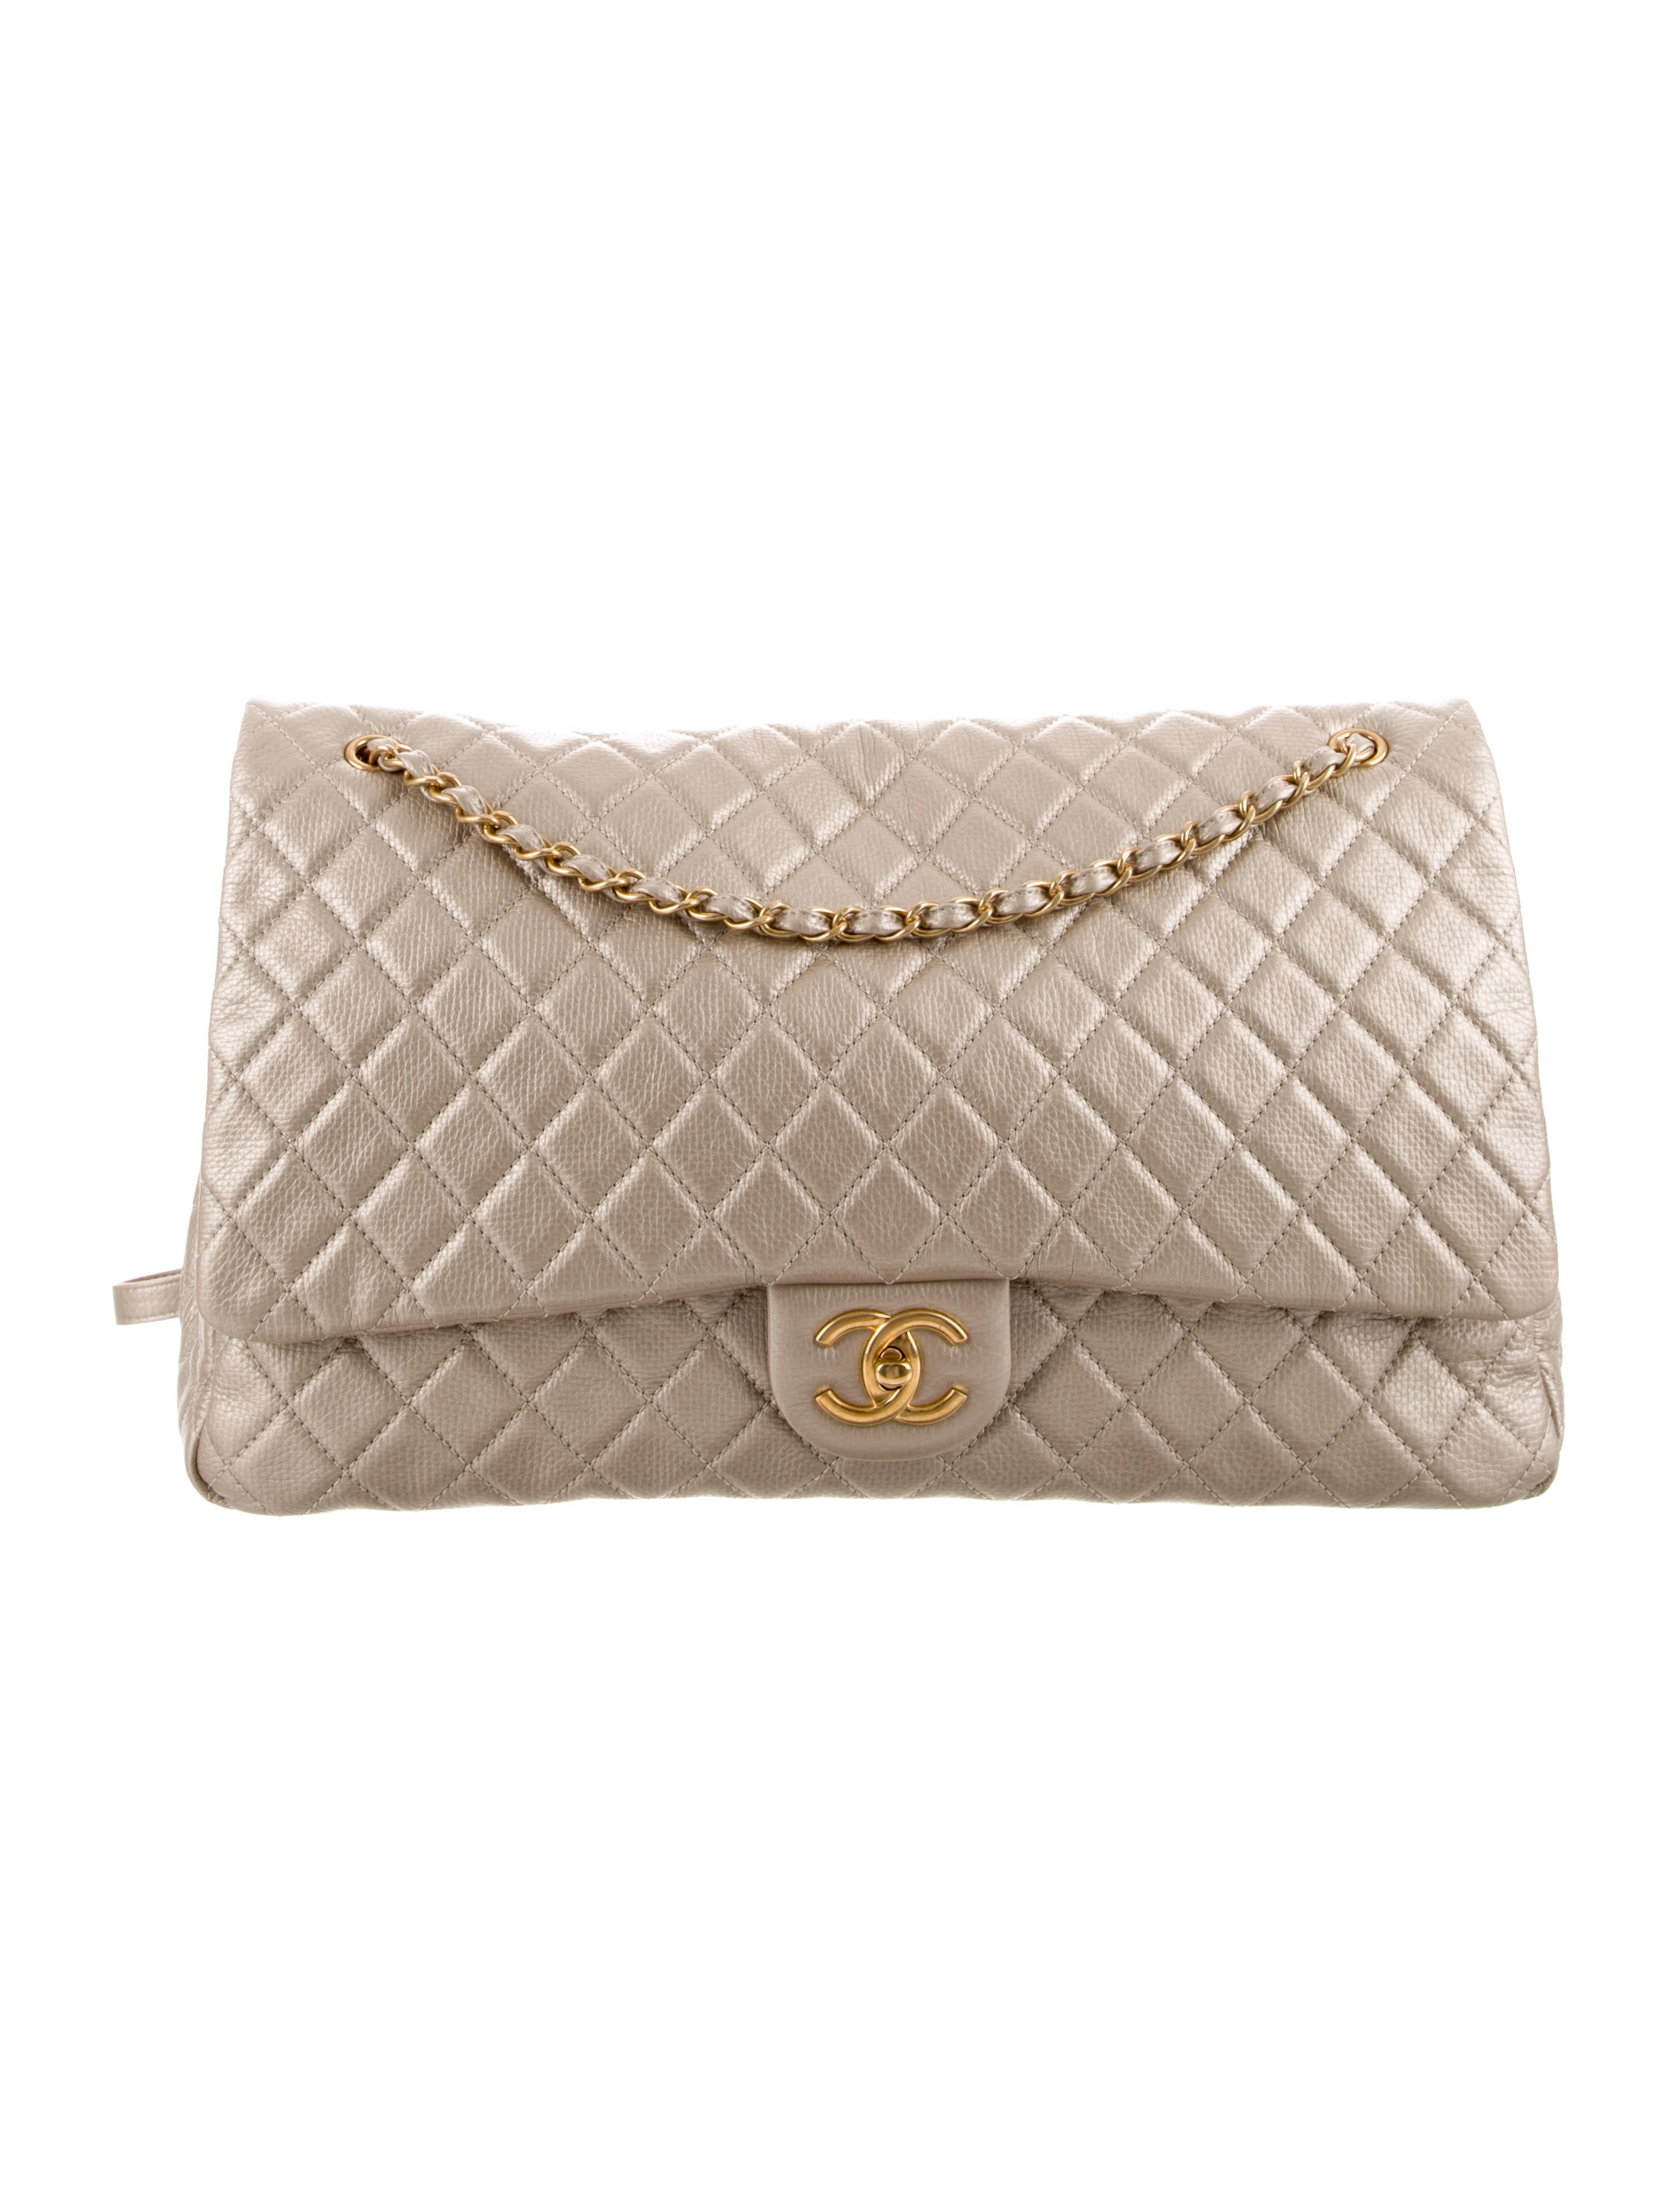 a2ed8fbef629 Chanel XXL Airline Classic Flap Bag - Handbags - CHA262352 | The ...